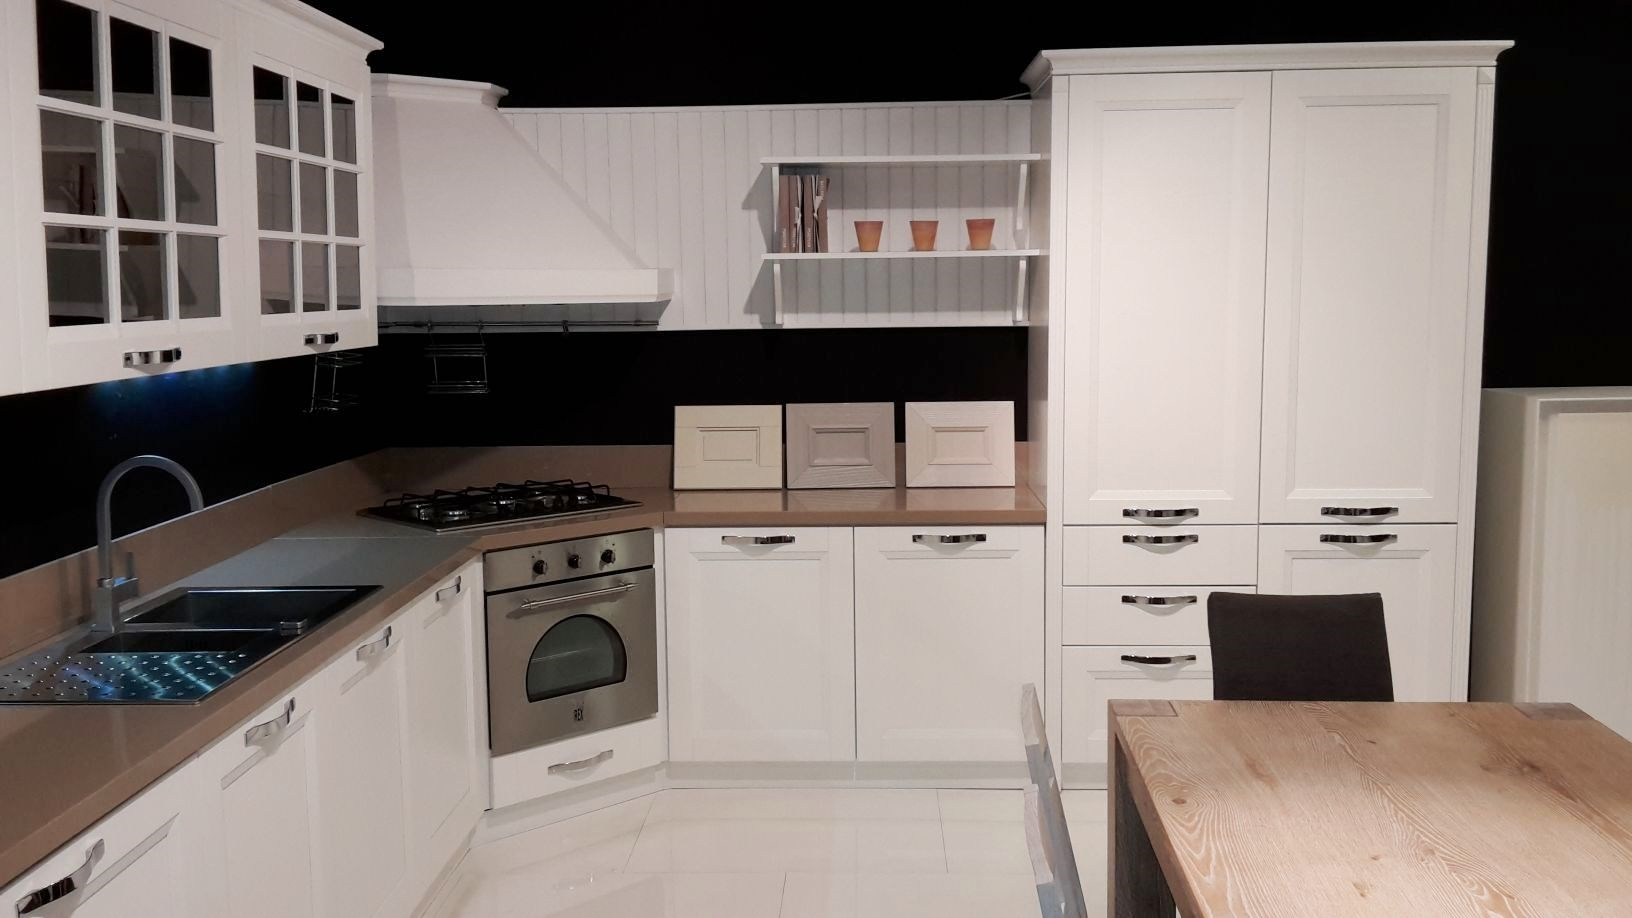 Awesome Cucine Stosa Palermo Images - Ideas & Design 2017 ...